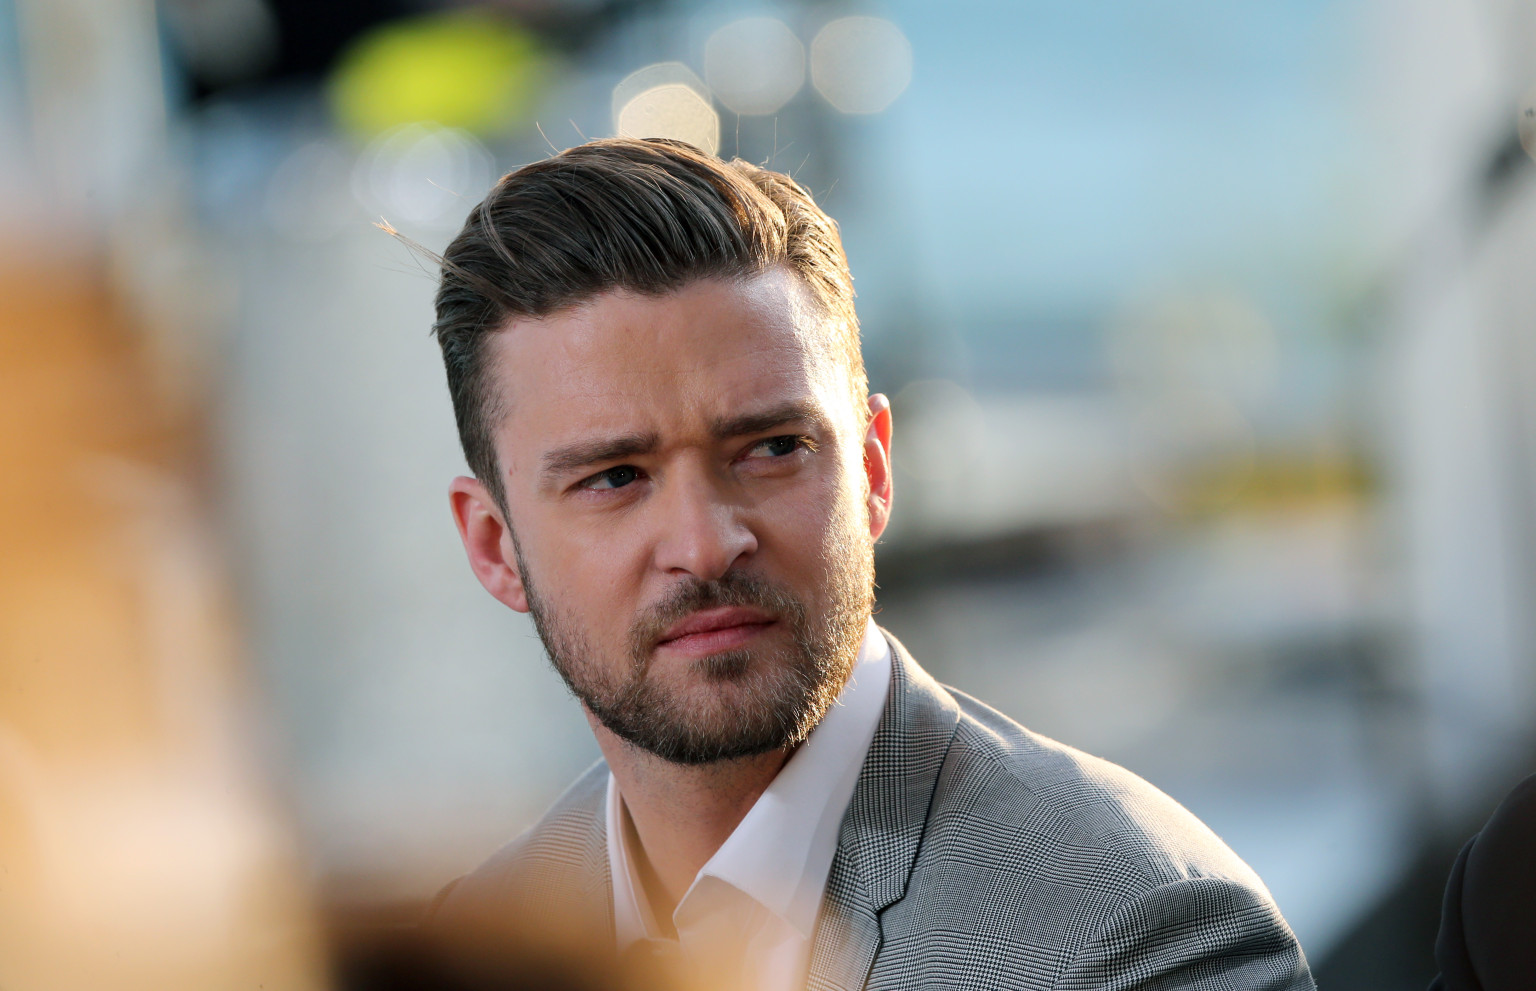 Justin Timberlake's 'Tunnel Vision' Single Art Is Very Awkward (P... Justin Timberlake